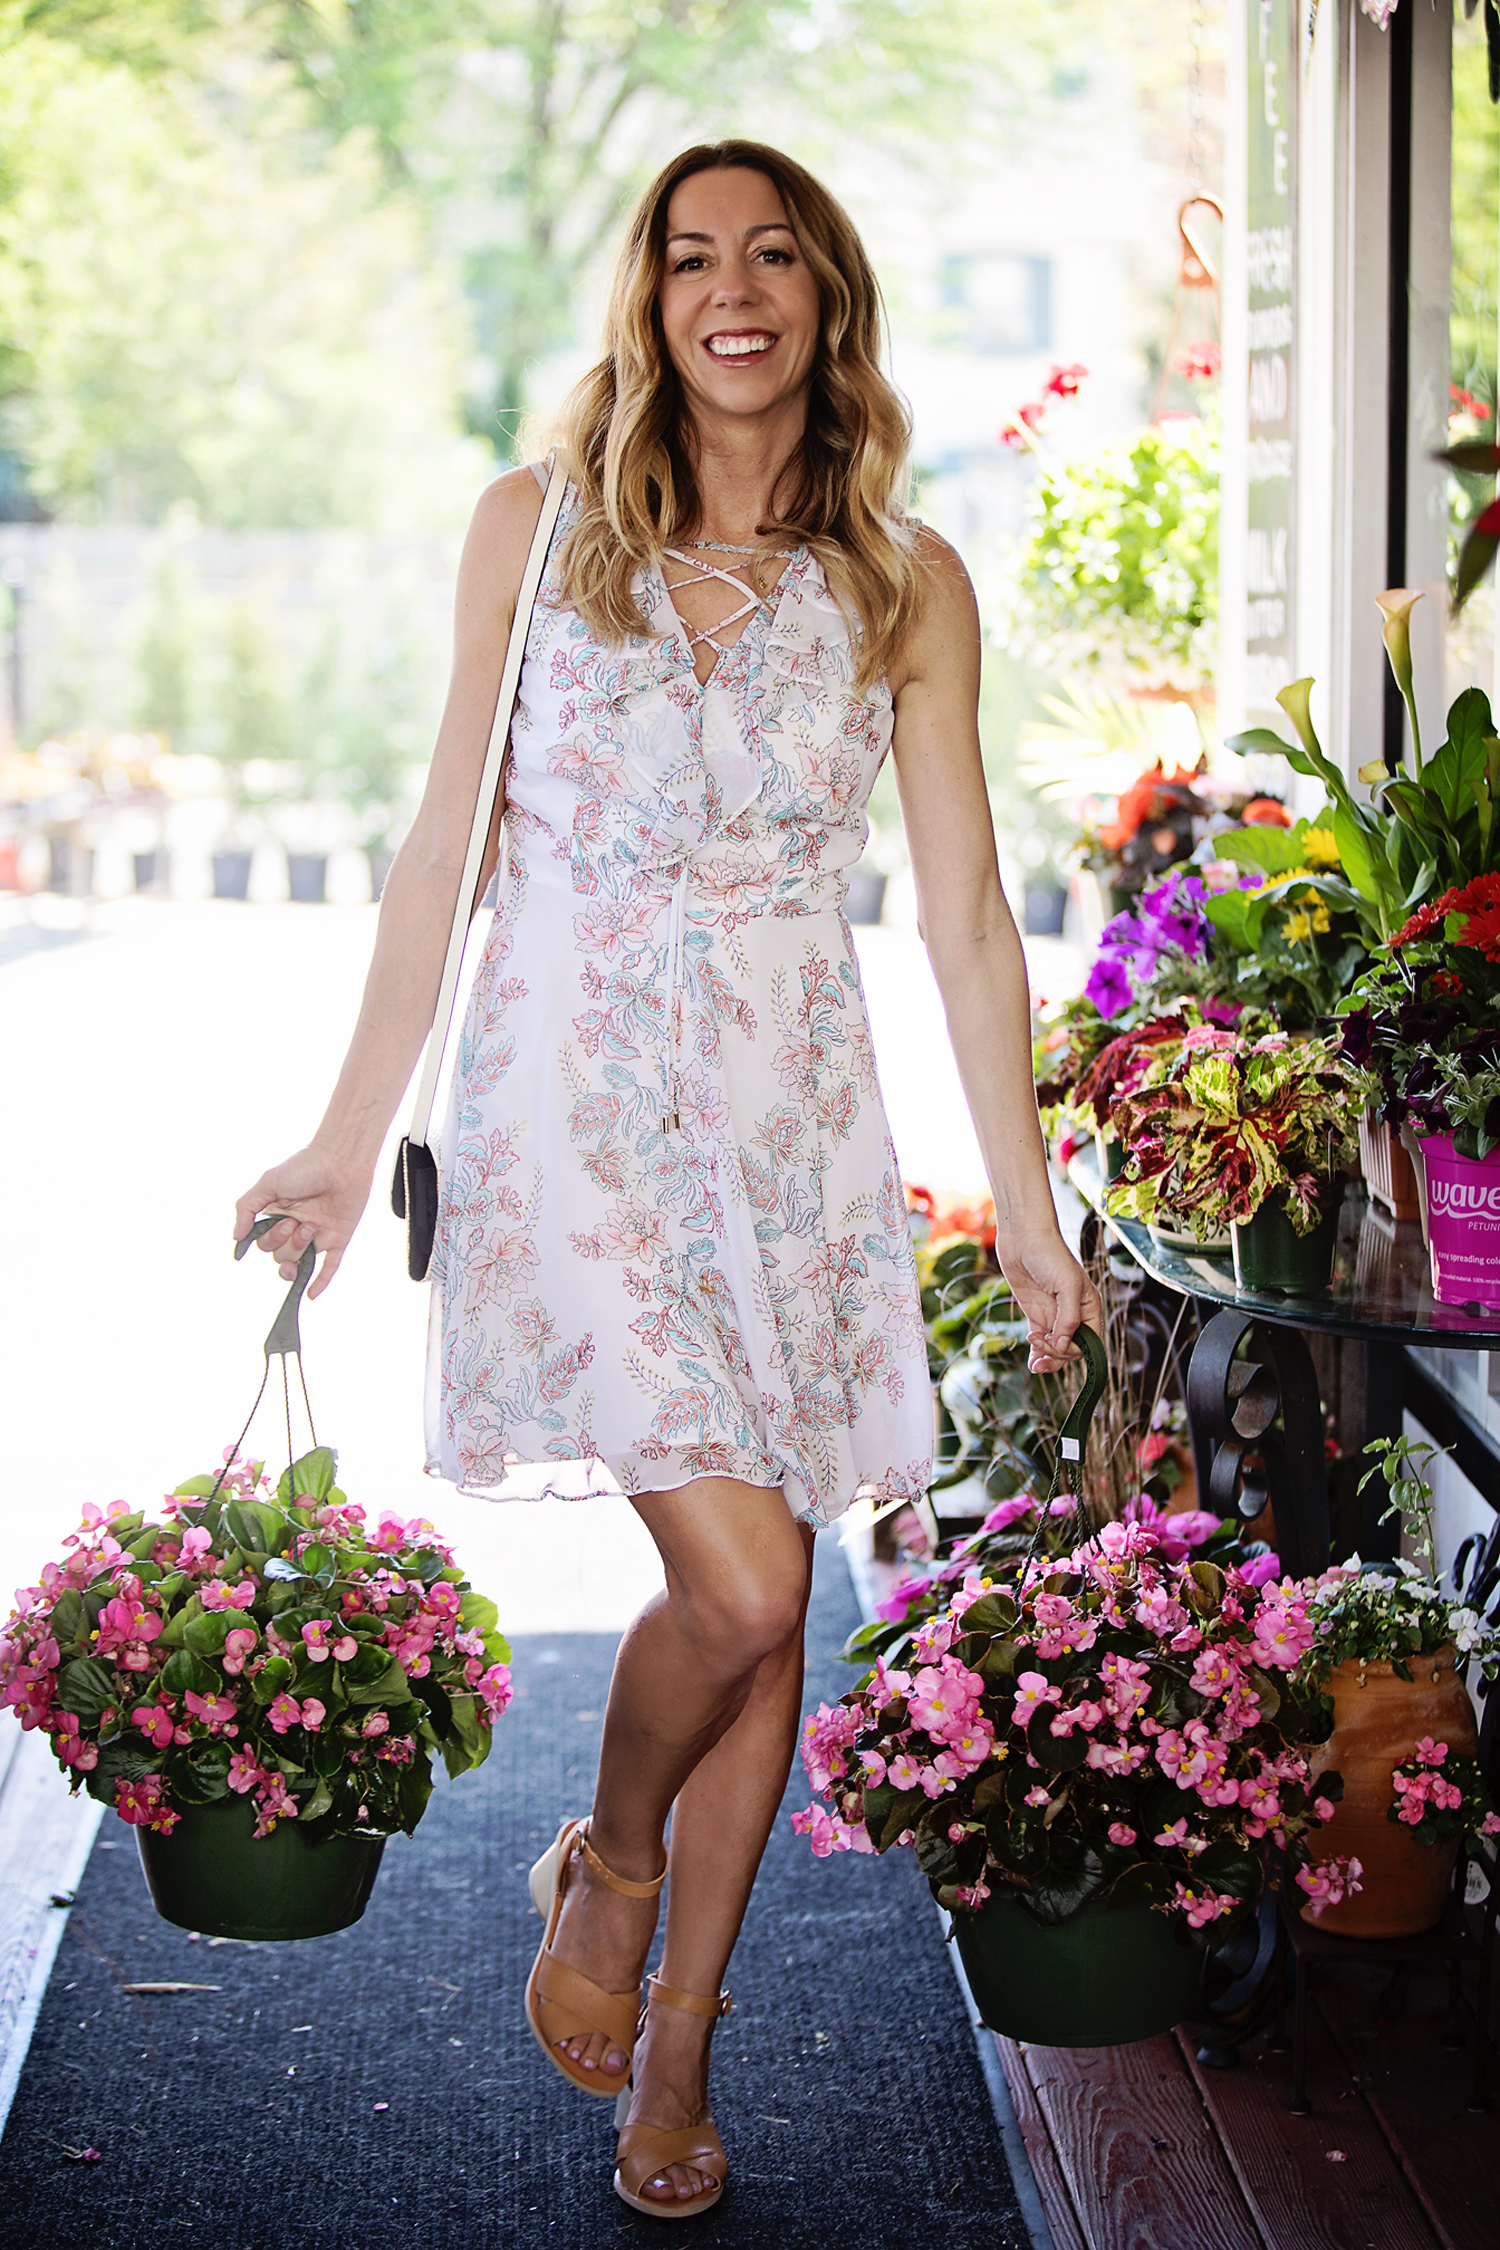 The Motherchic wearing floral dress from Lord & Taylor